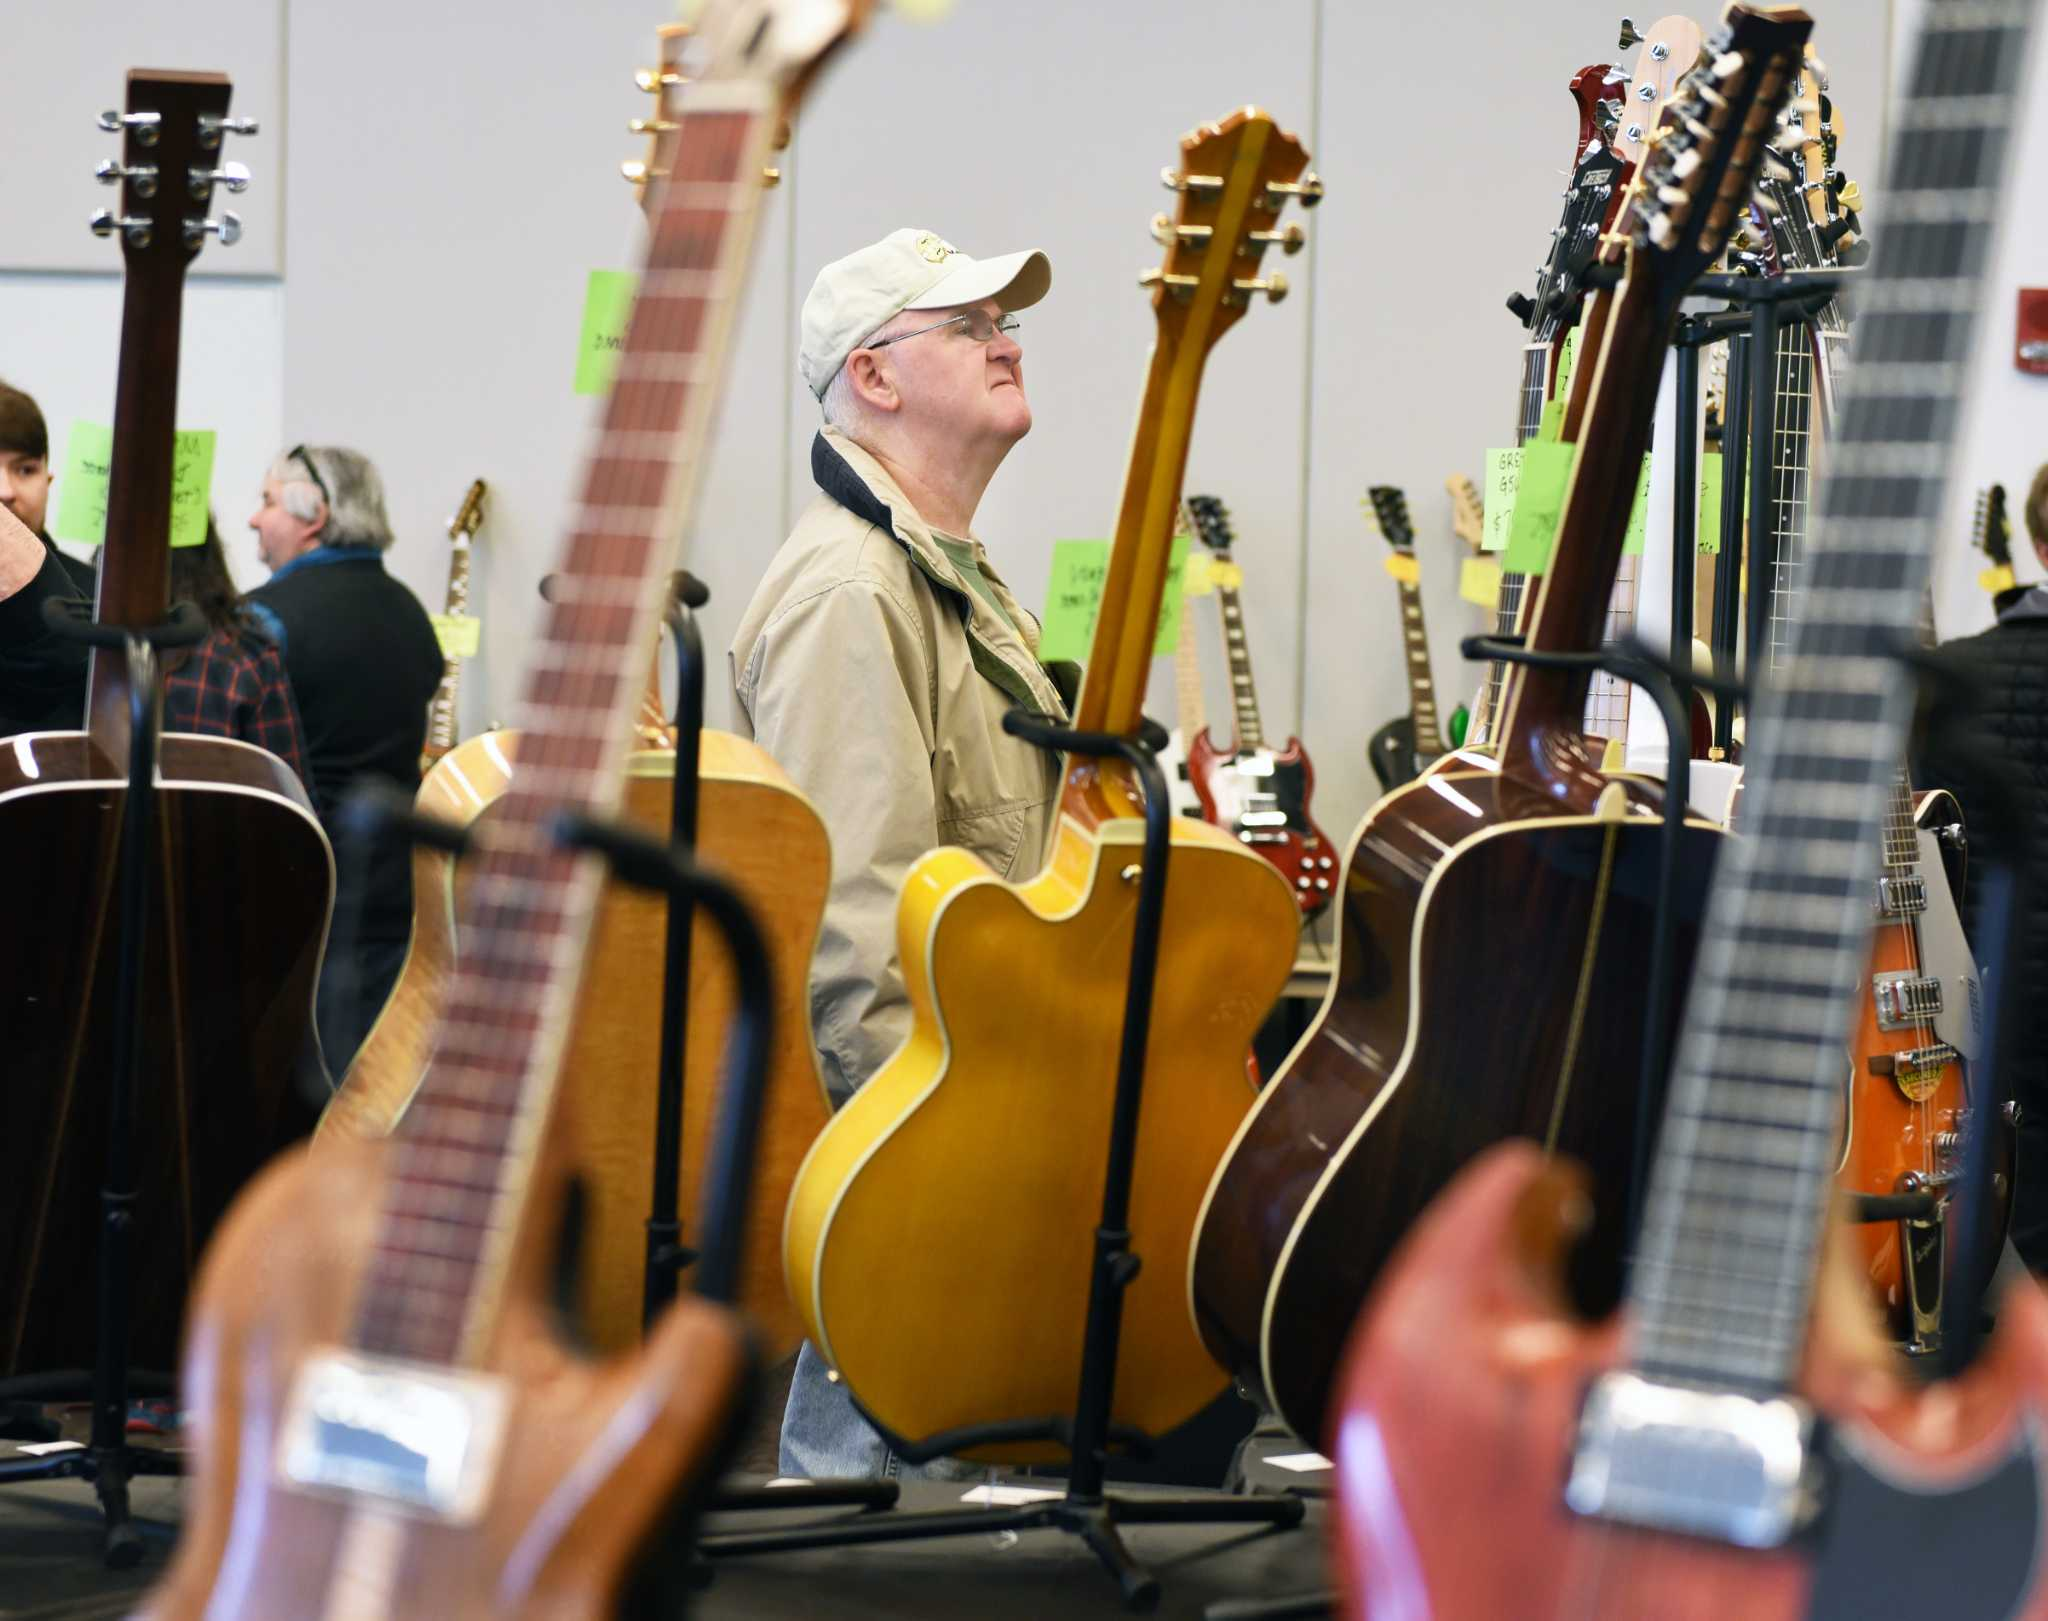 photos guitar show in saratoga springs times union. Black Bedroom Furniture Sets. Home Design Ideas